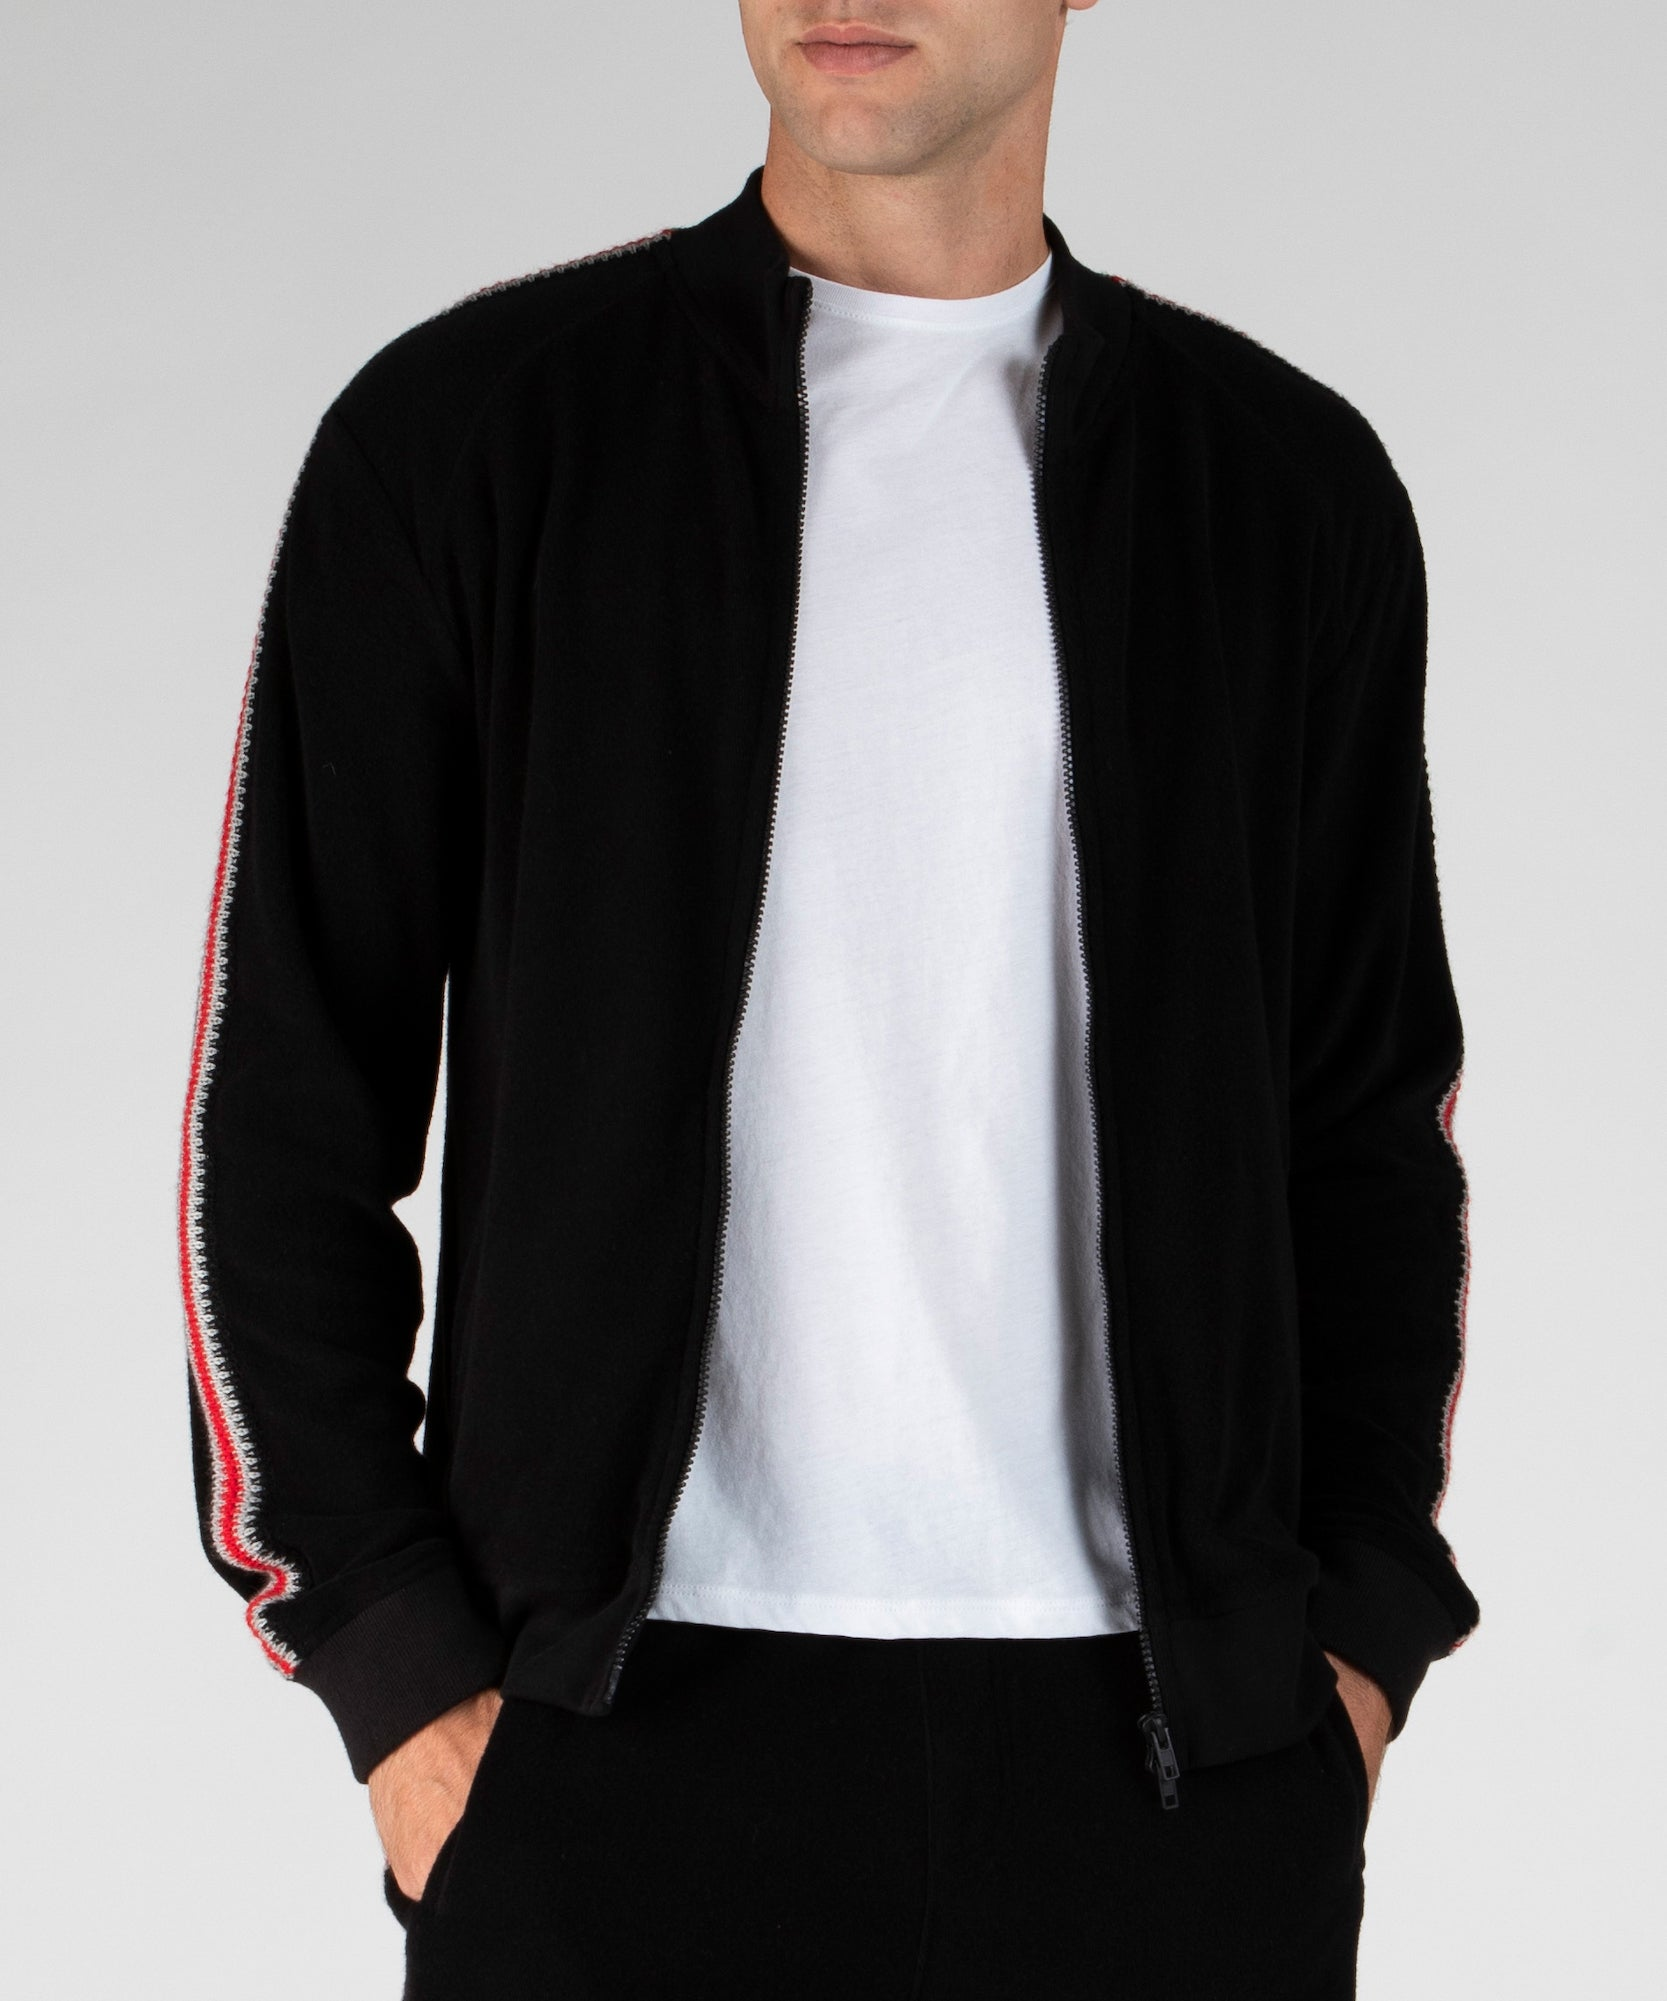 Black Plush Terry Zip-Up Track Jacket - Men's Luxe Loungewear by ATM Anthony Thomas Melillo